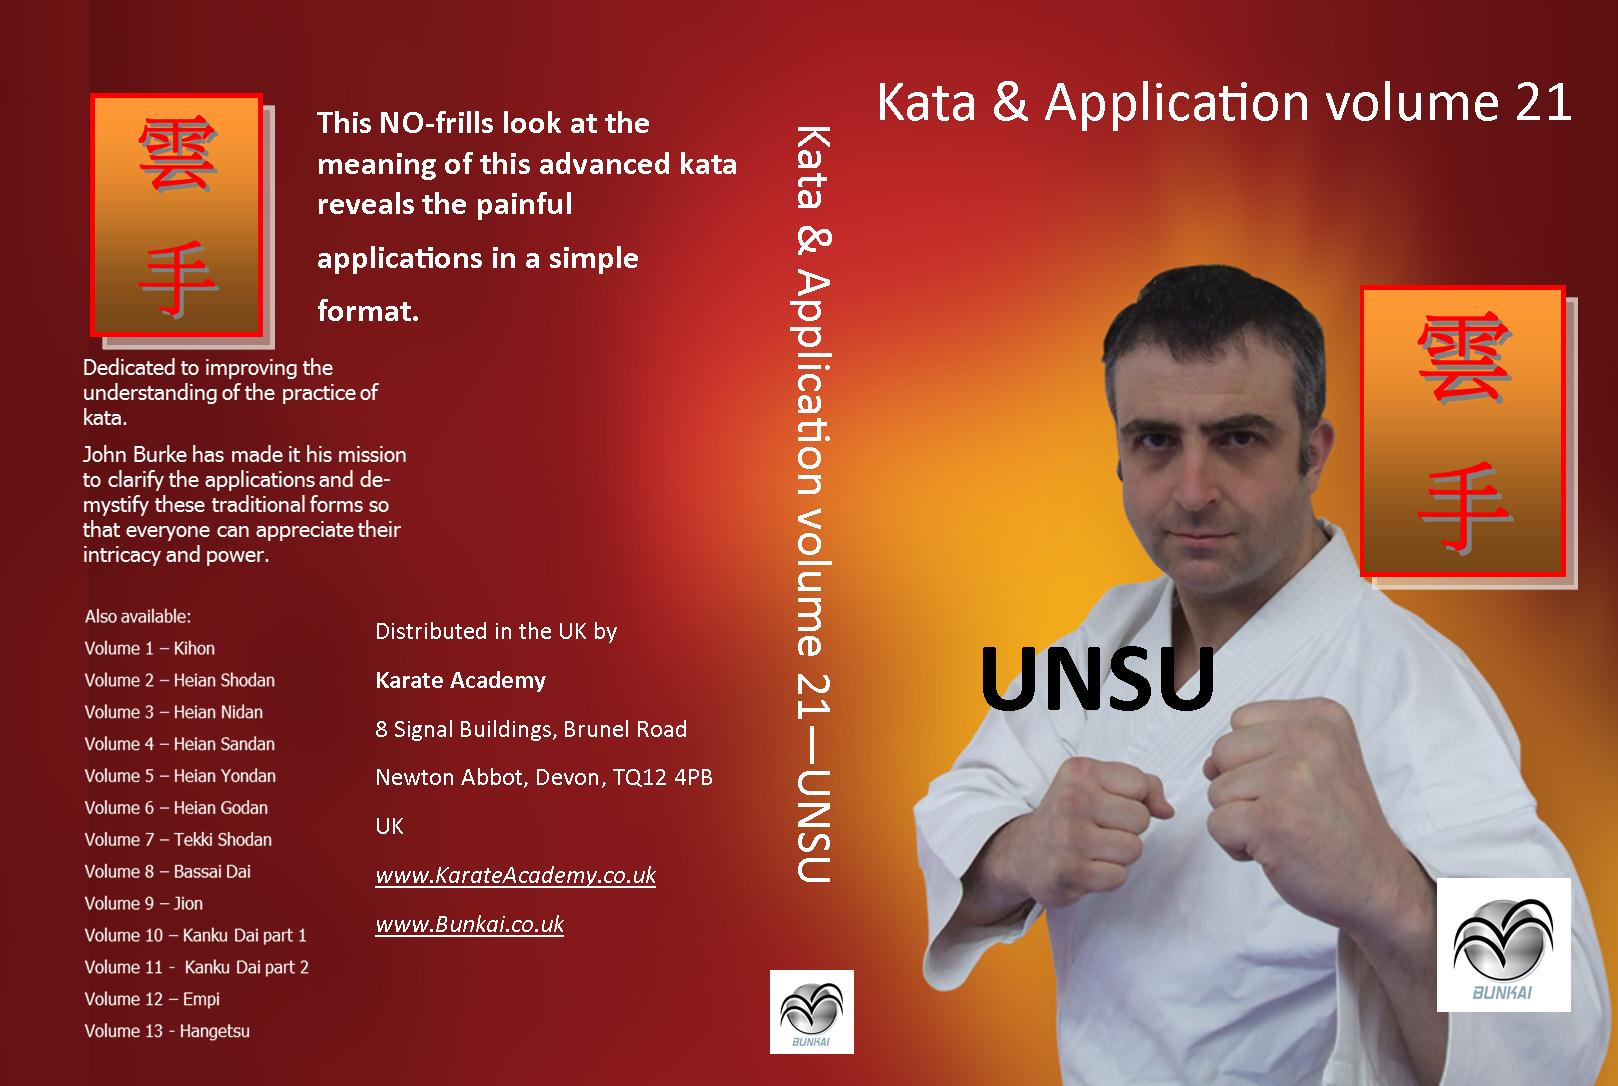 unsu kata applications